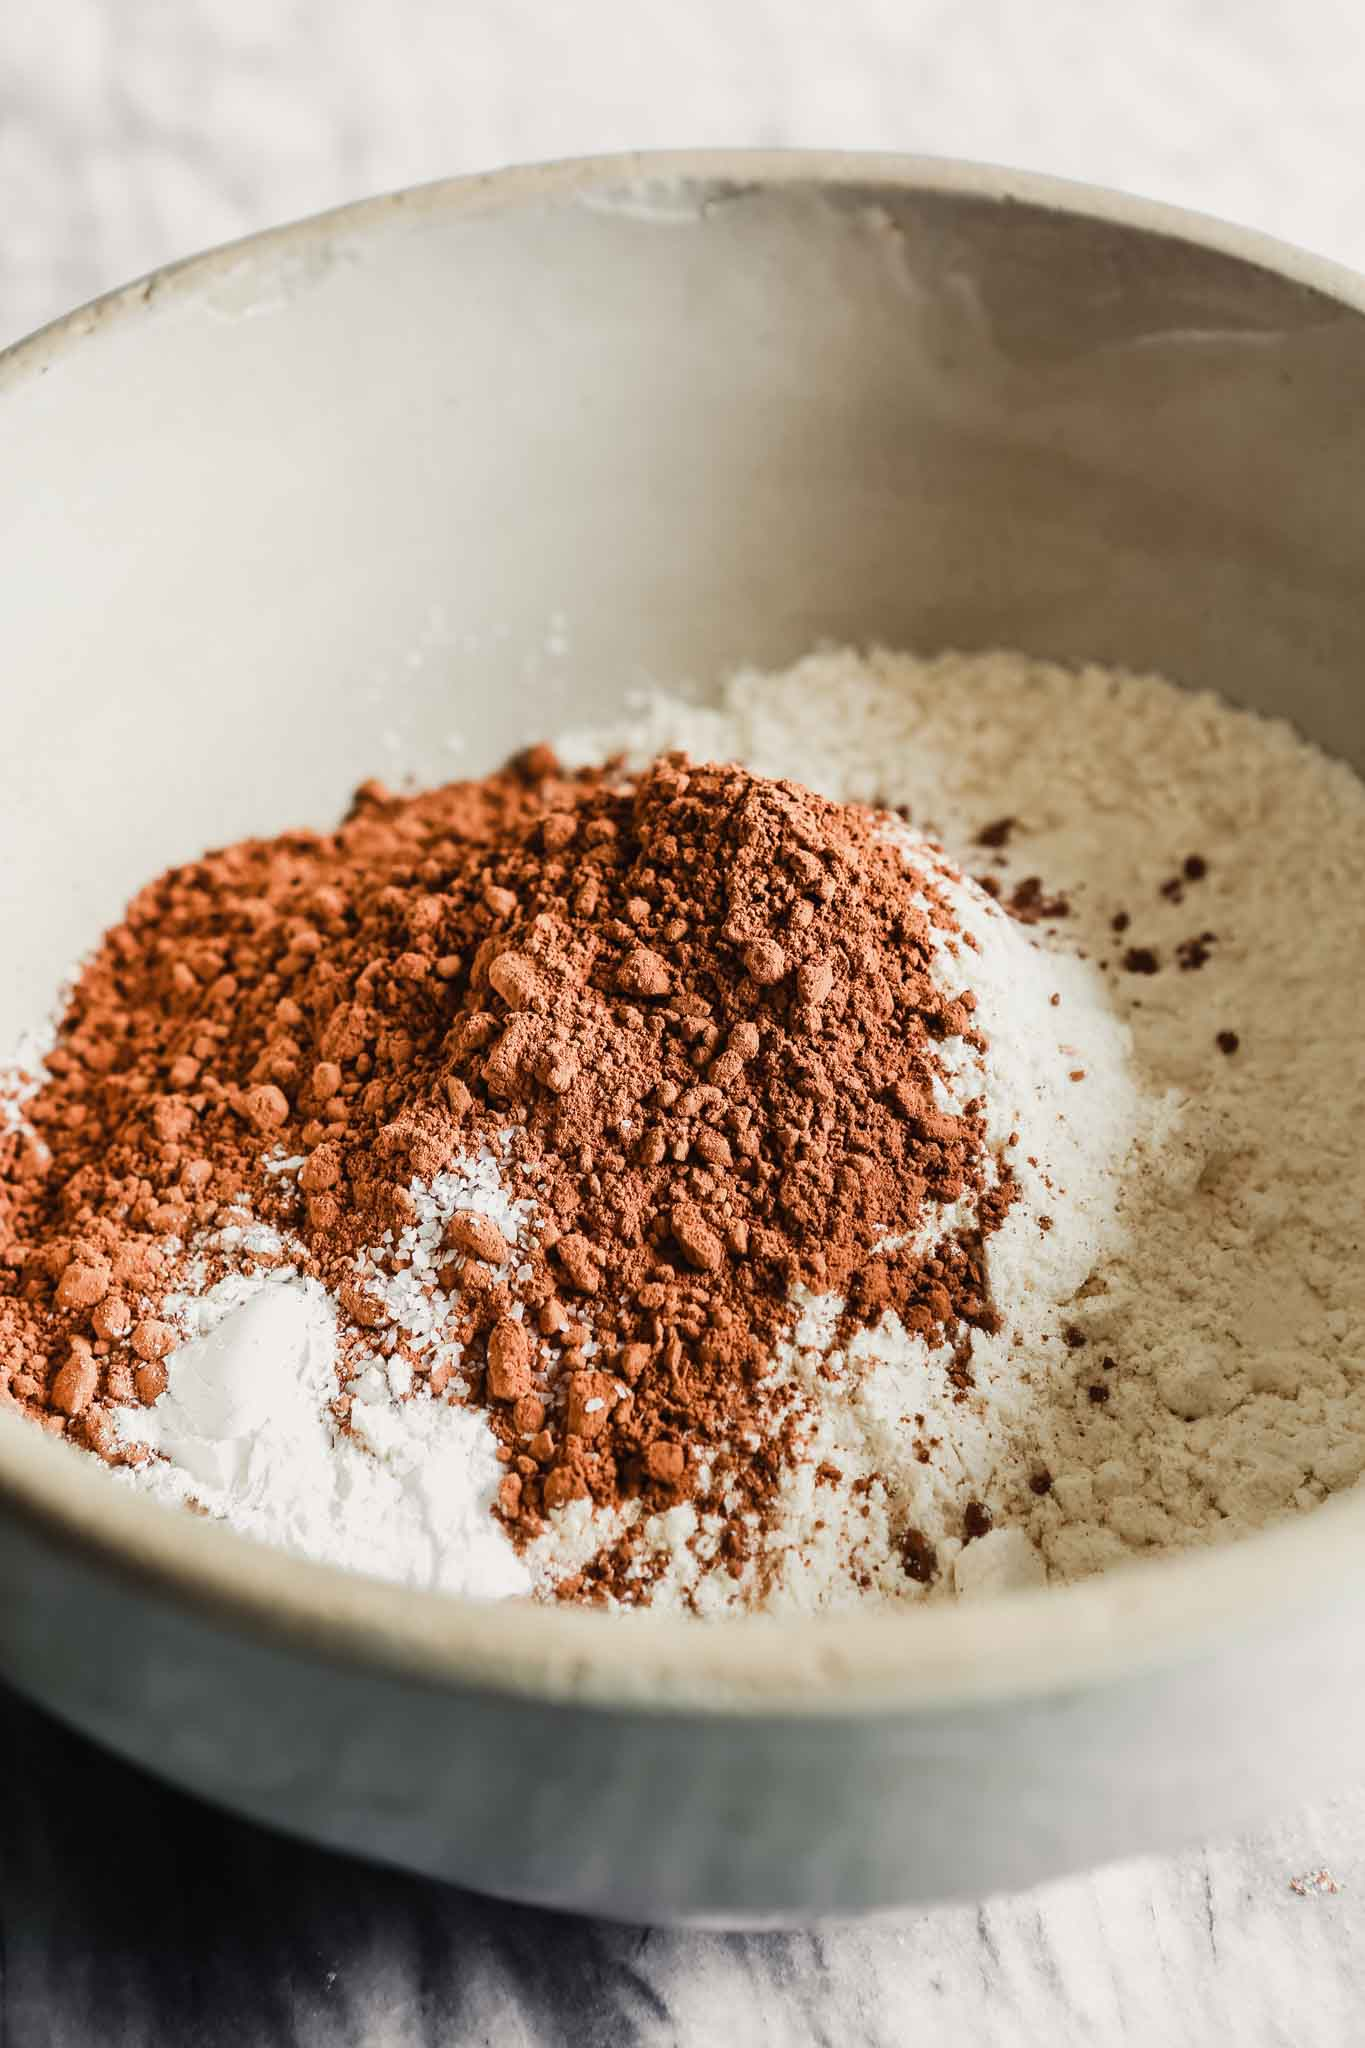 Photograph of flour, cocoa powder, and spices in a mixing bowl